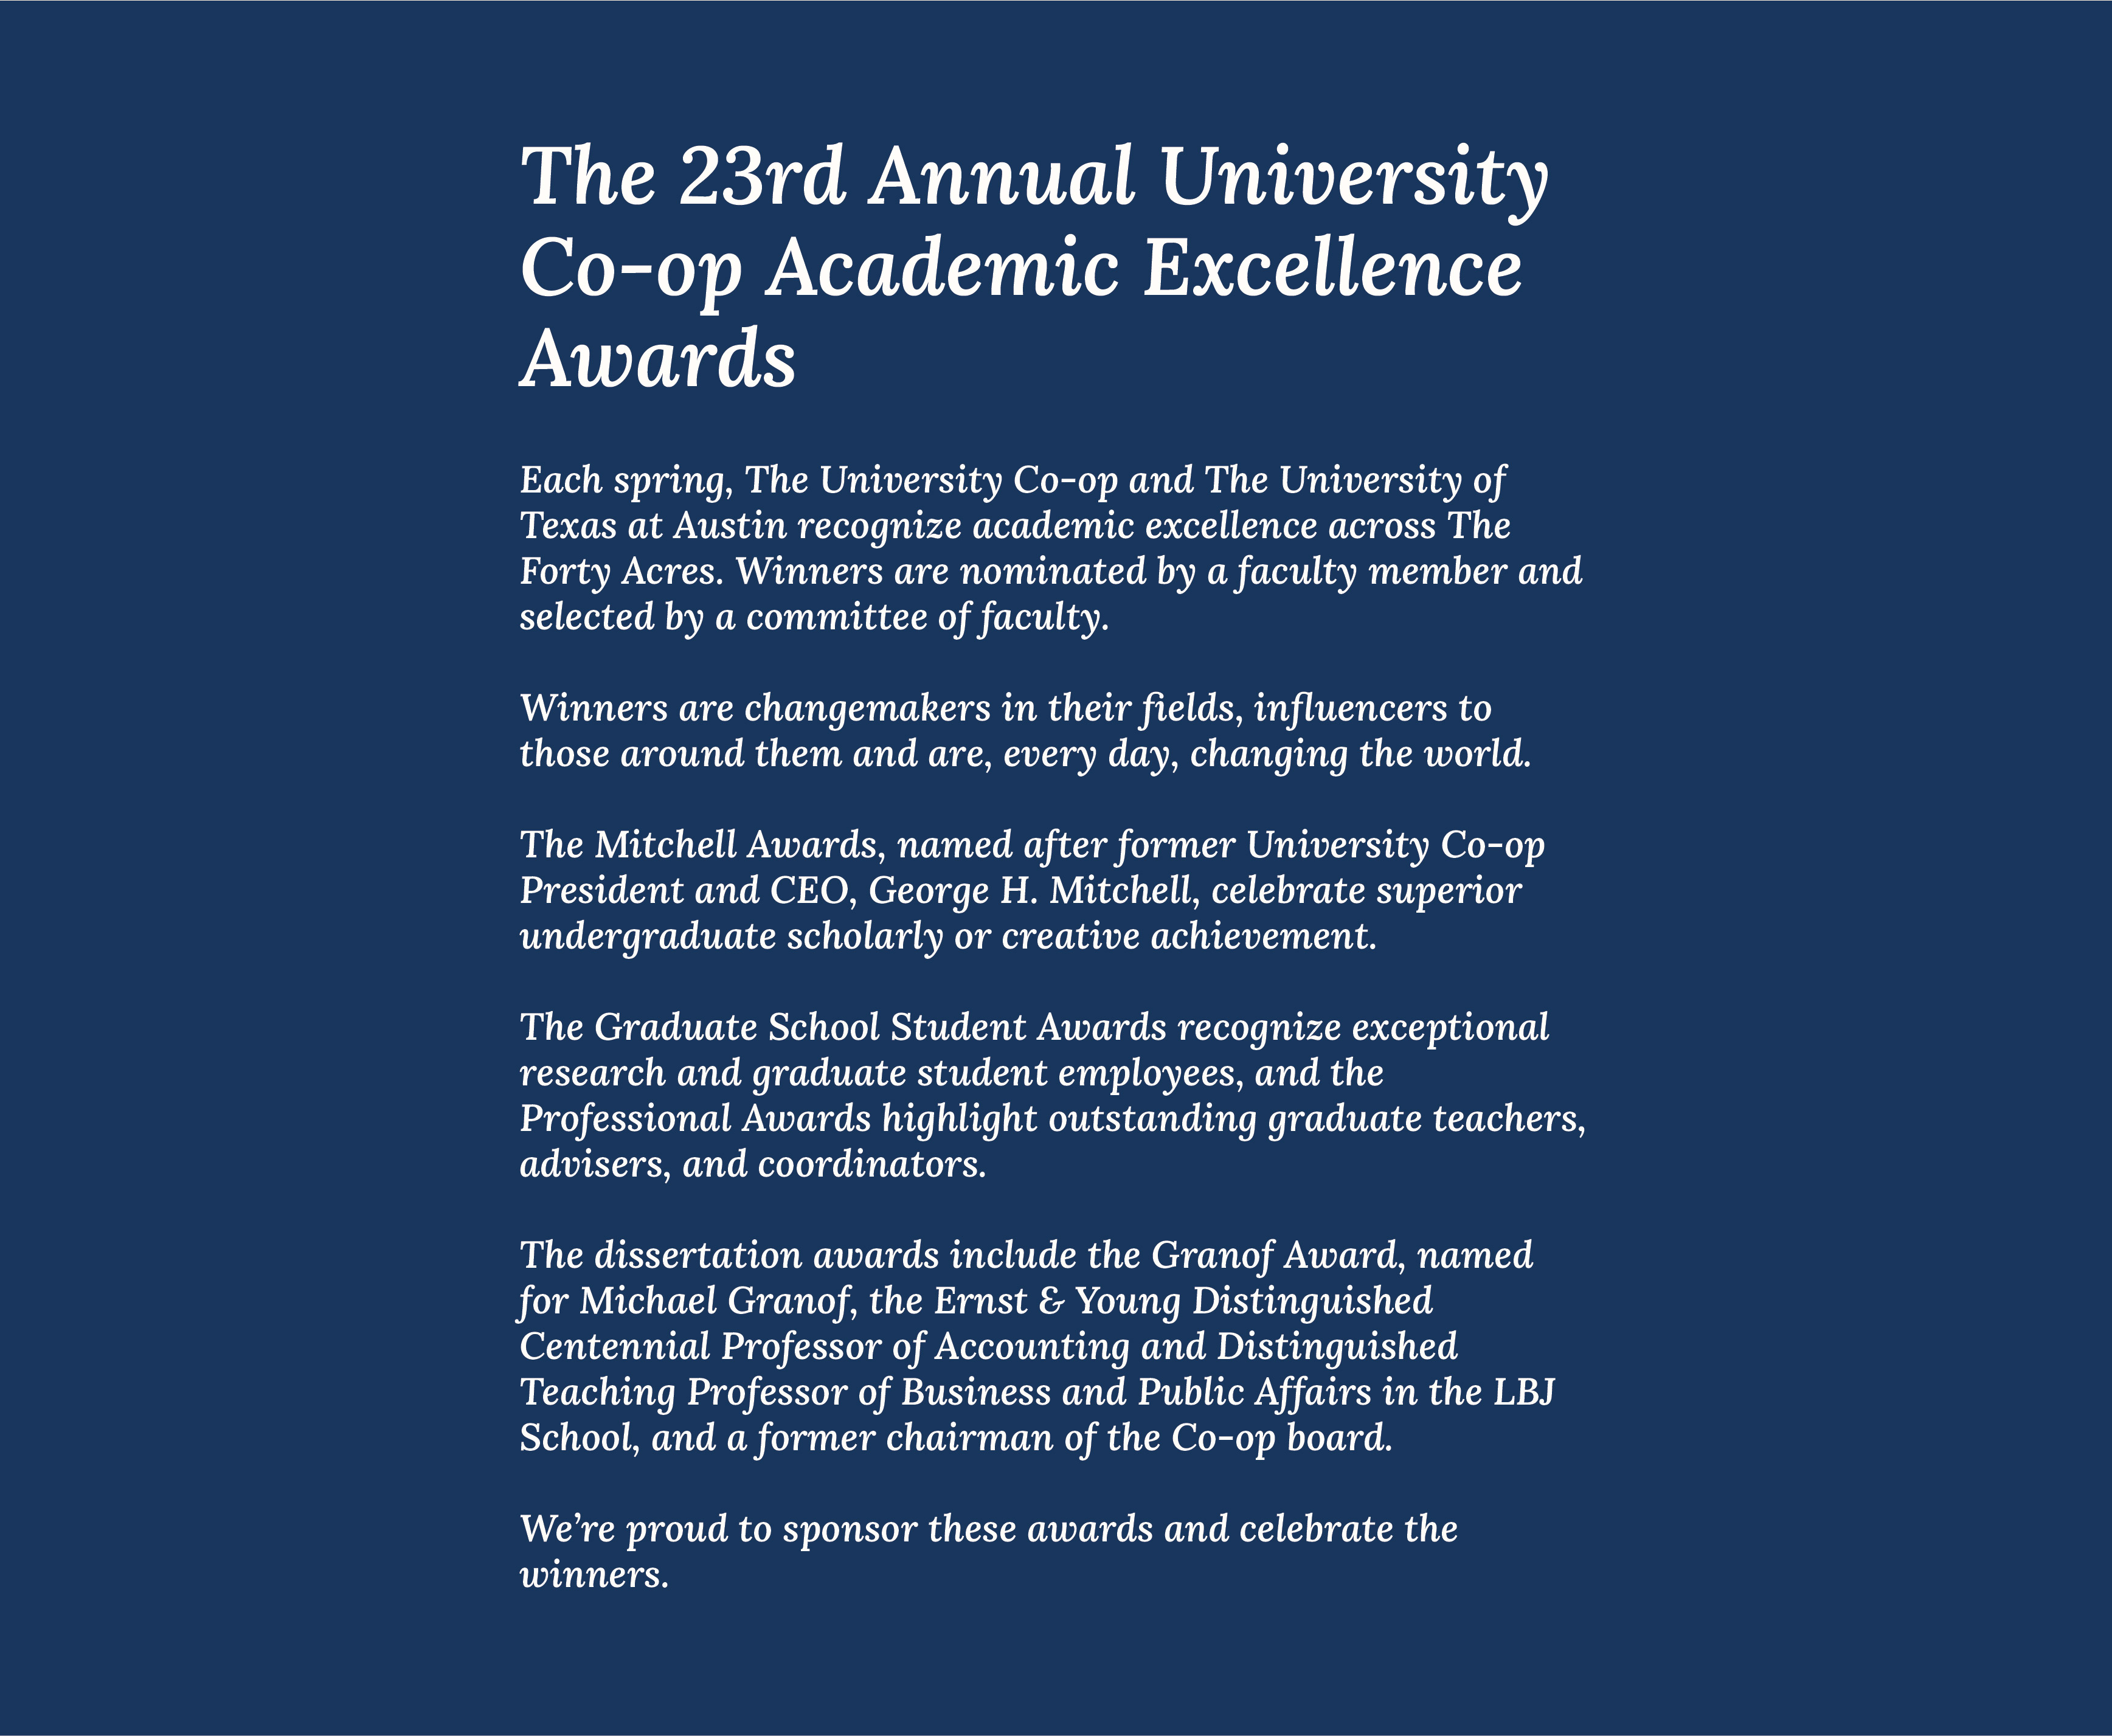 Each spring, The University Co-op and The University of Texas at Austin celebrate academic excellence across the forty acres.